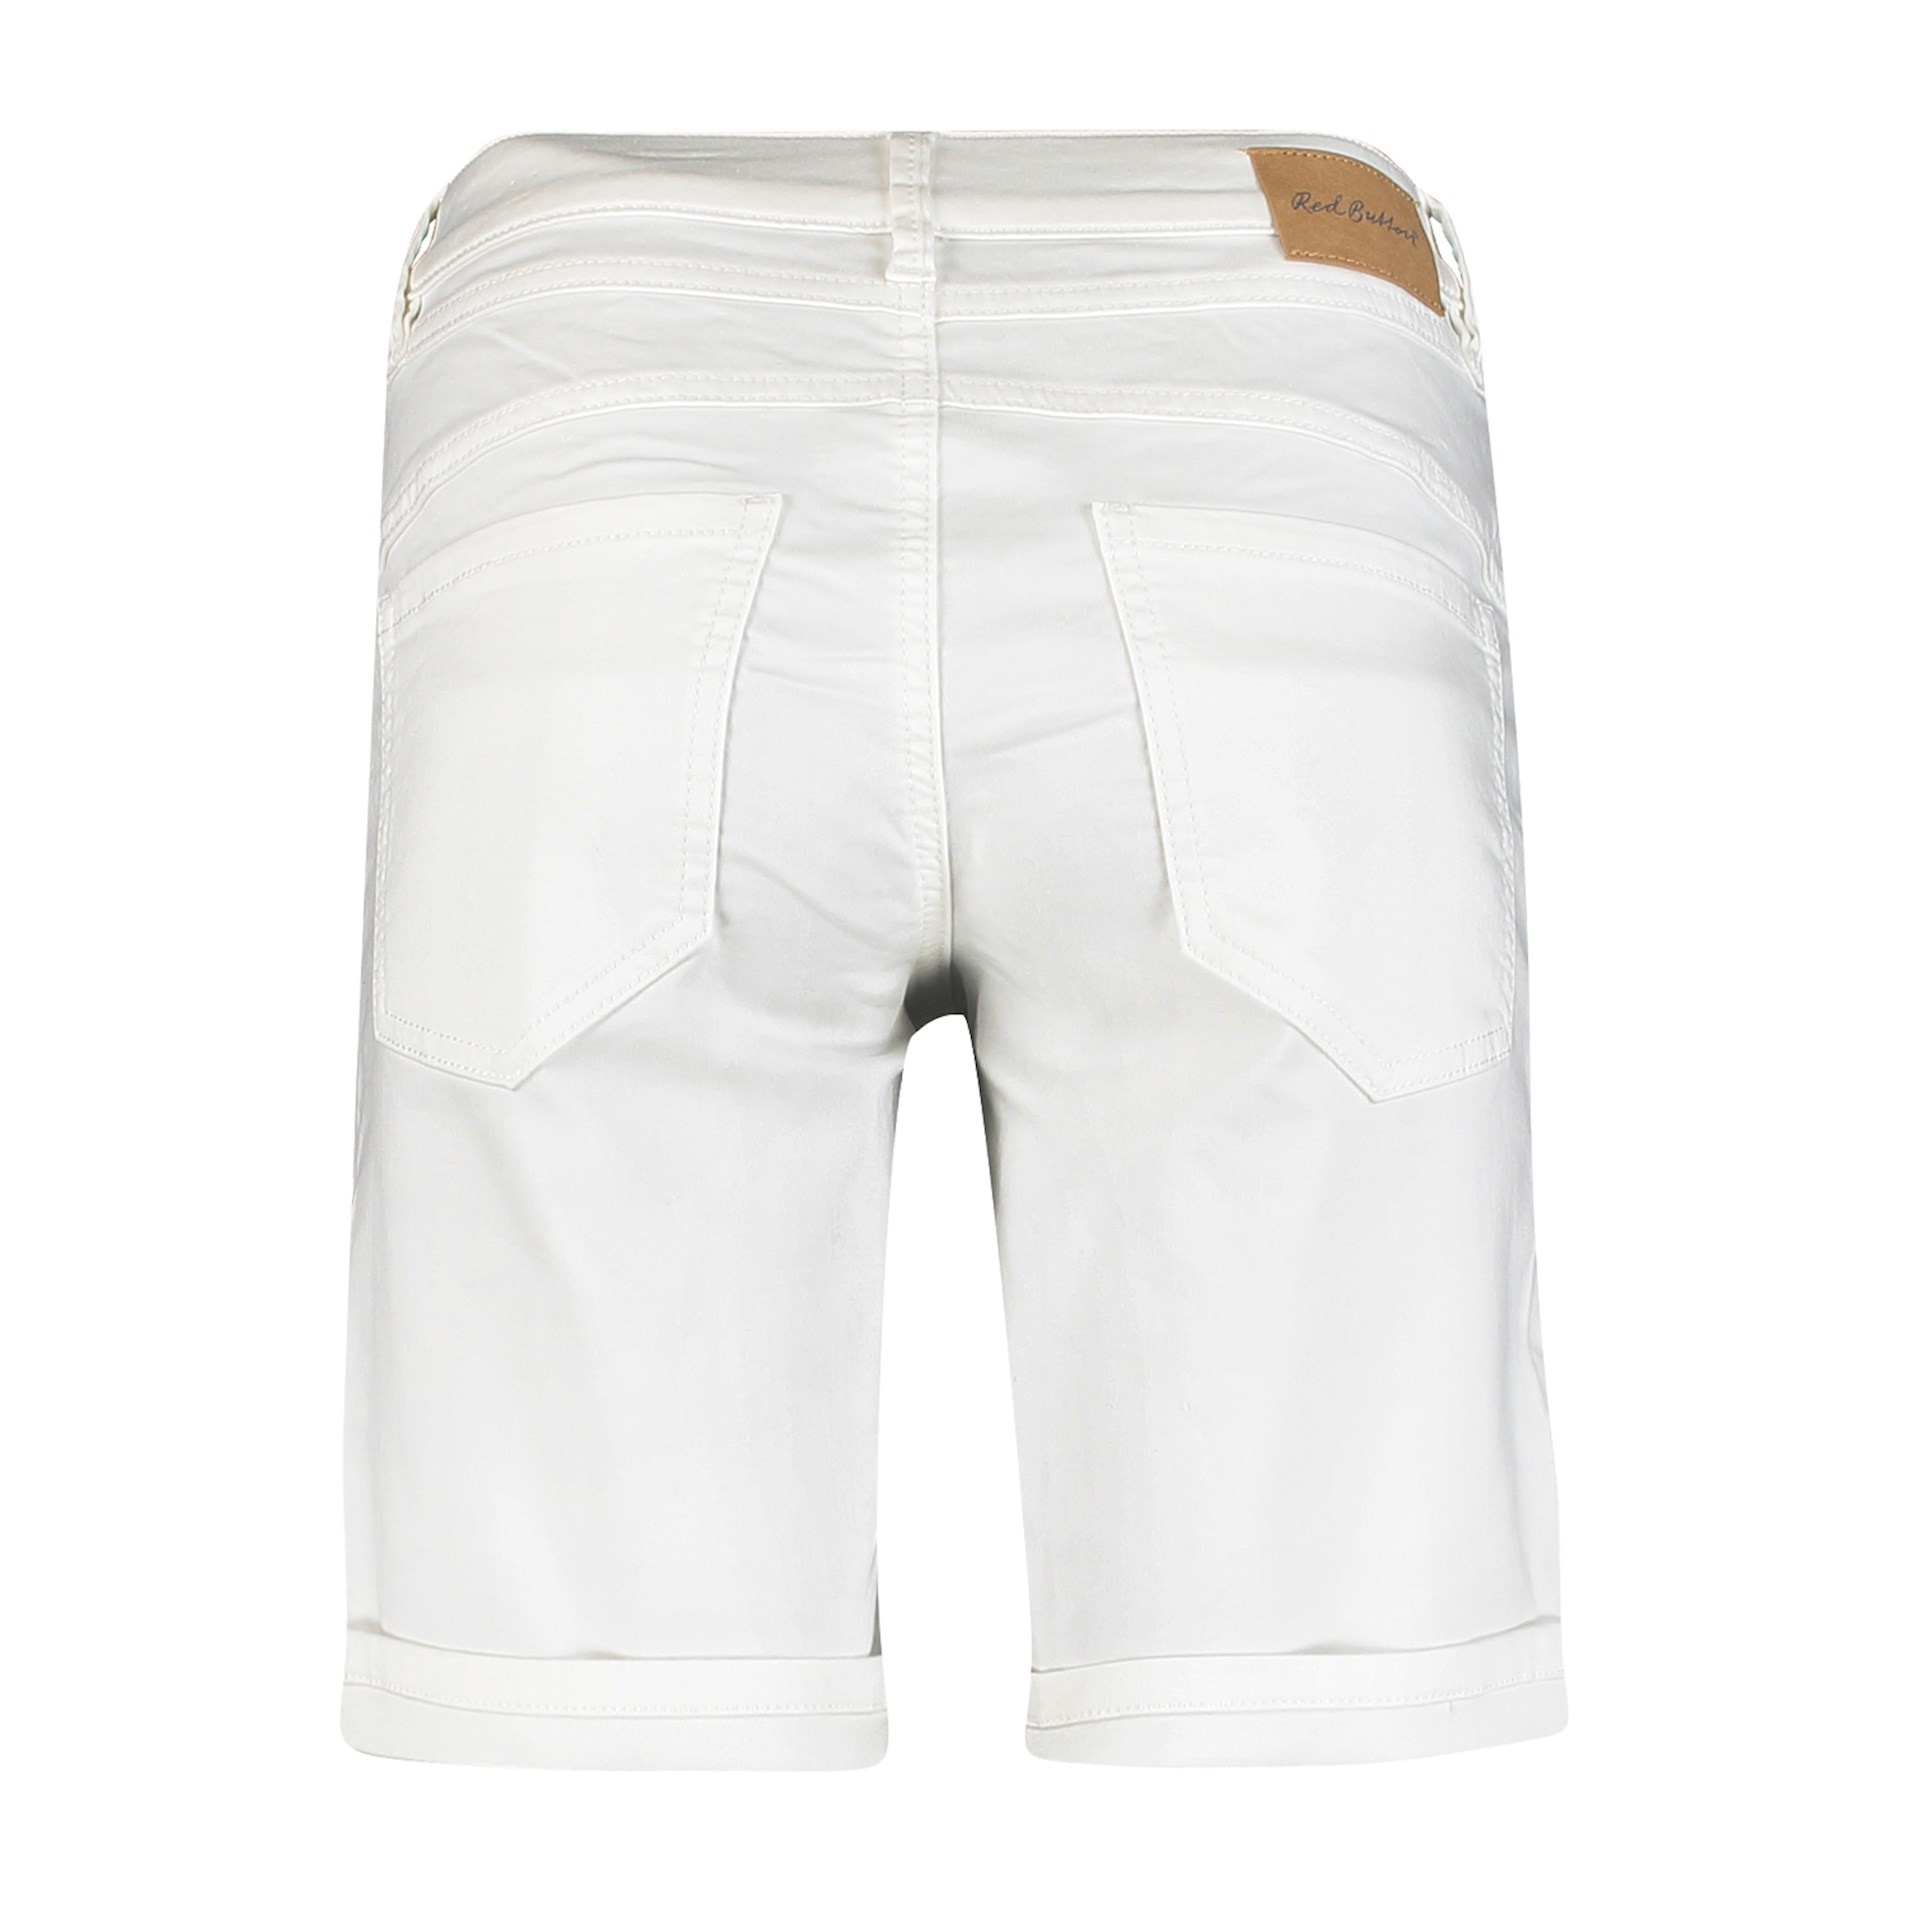 Red Button Red Button short Relax jog color white